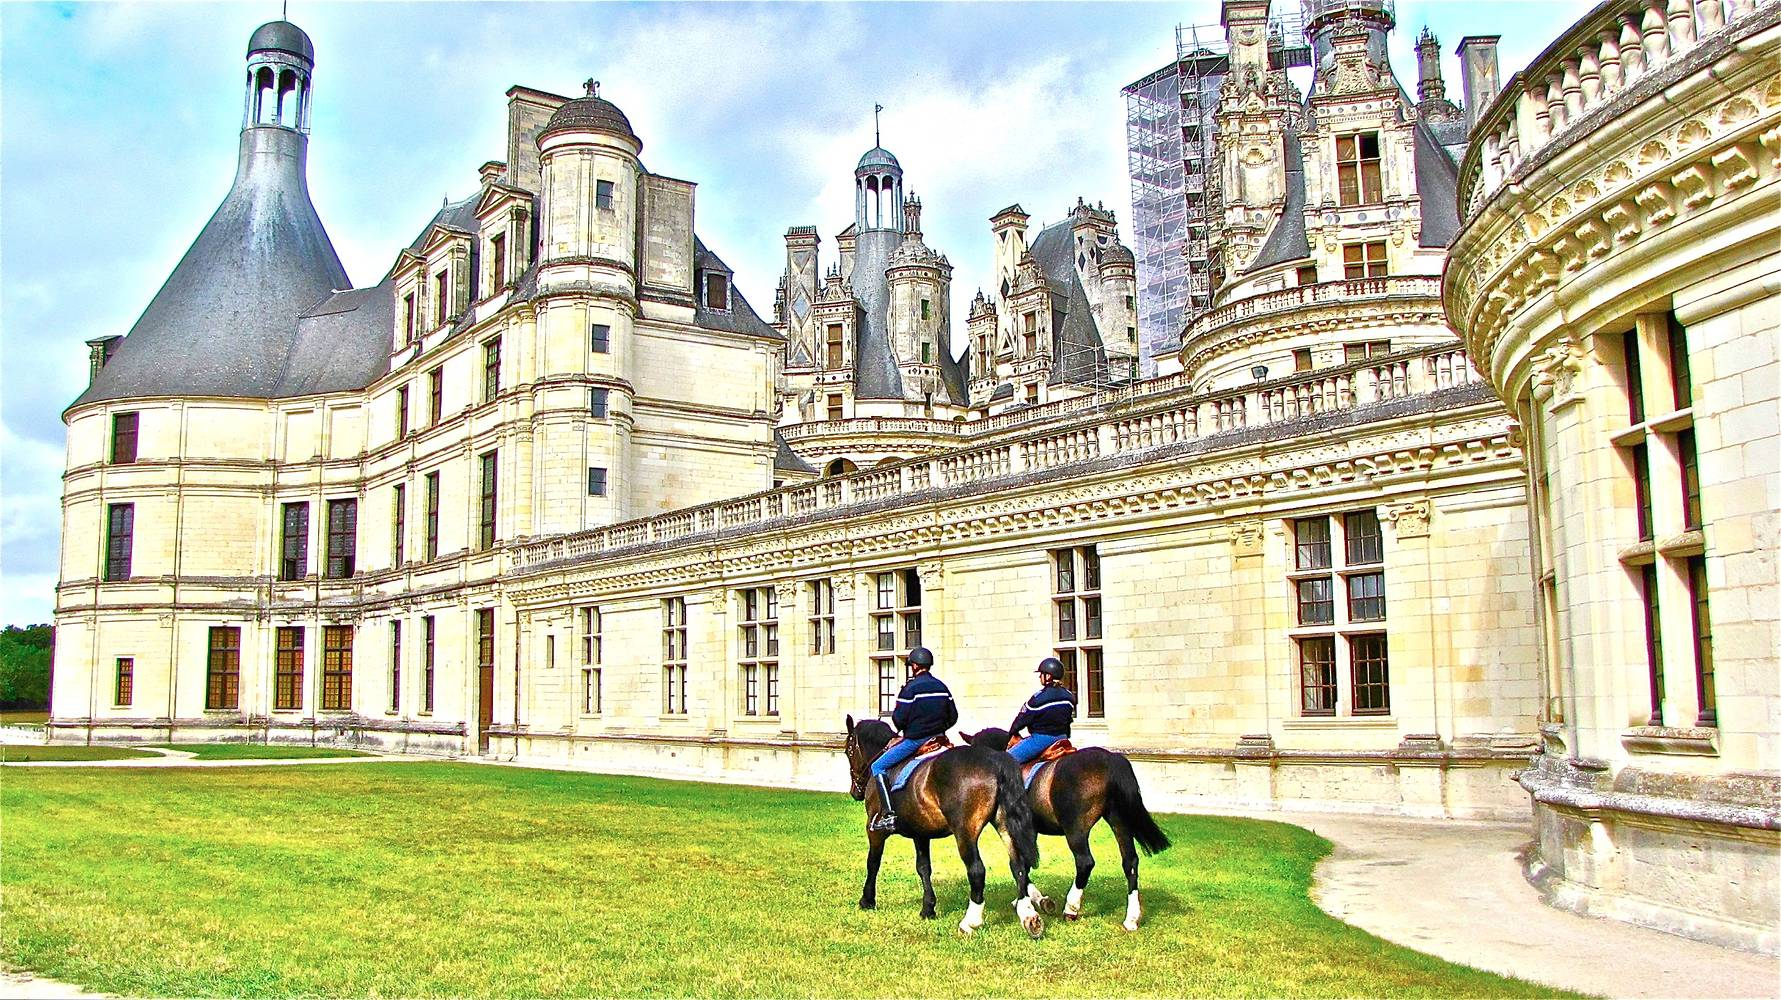 CHAMBORD SECURITY by Joeann Edmonds-Matthew